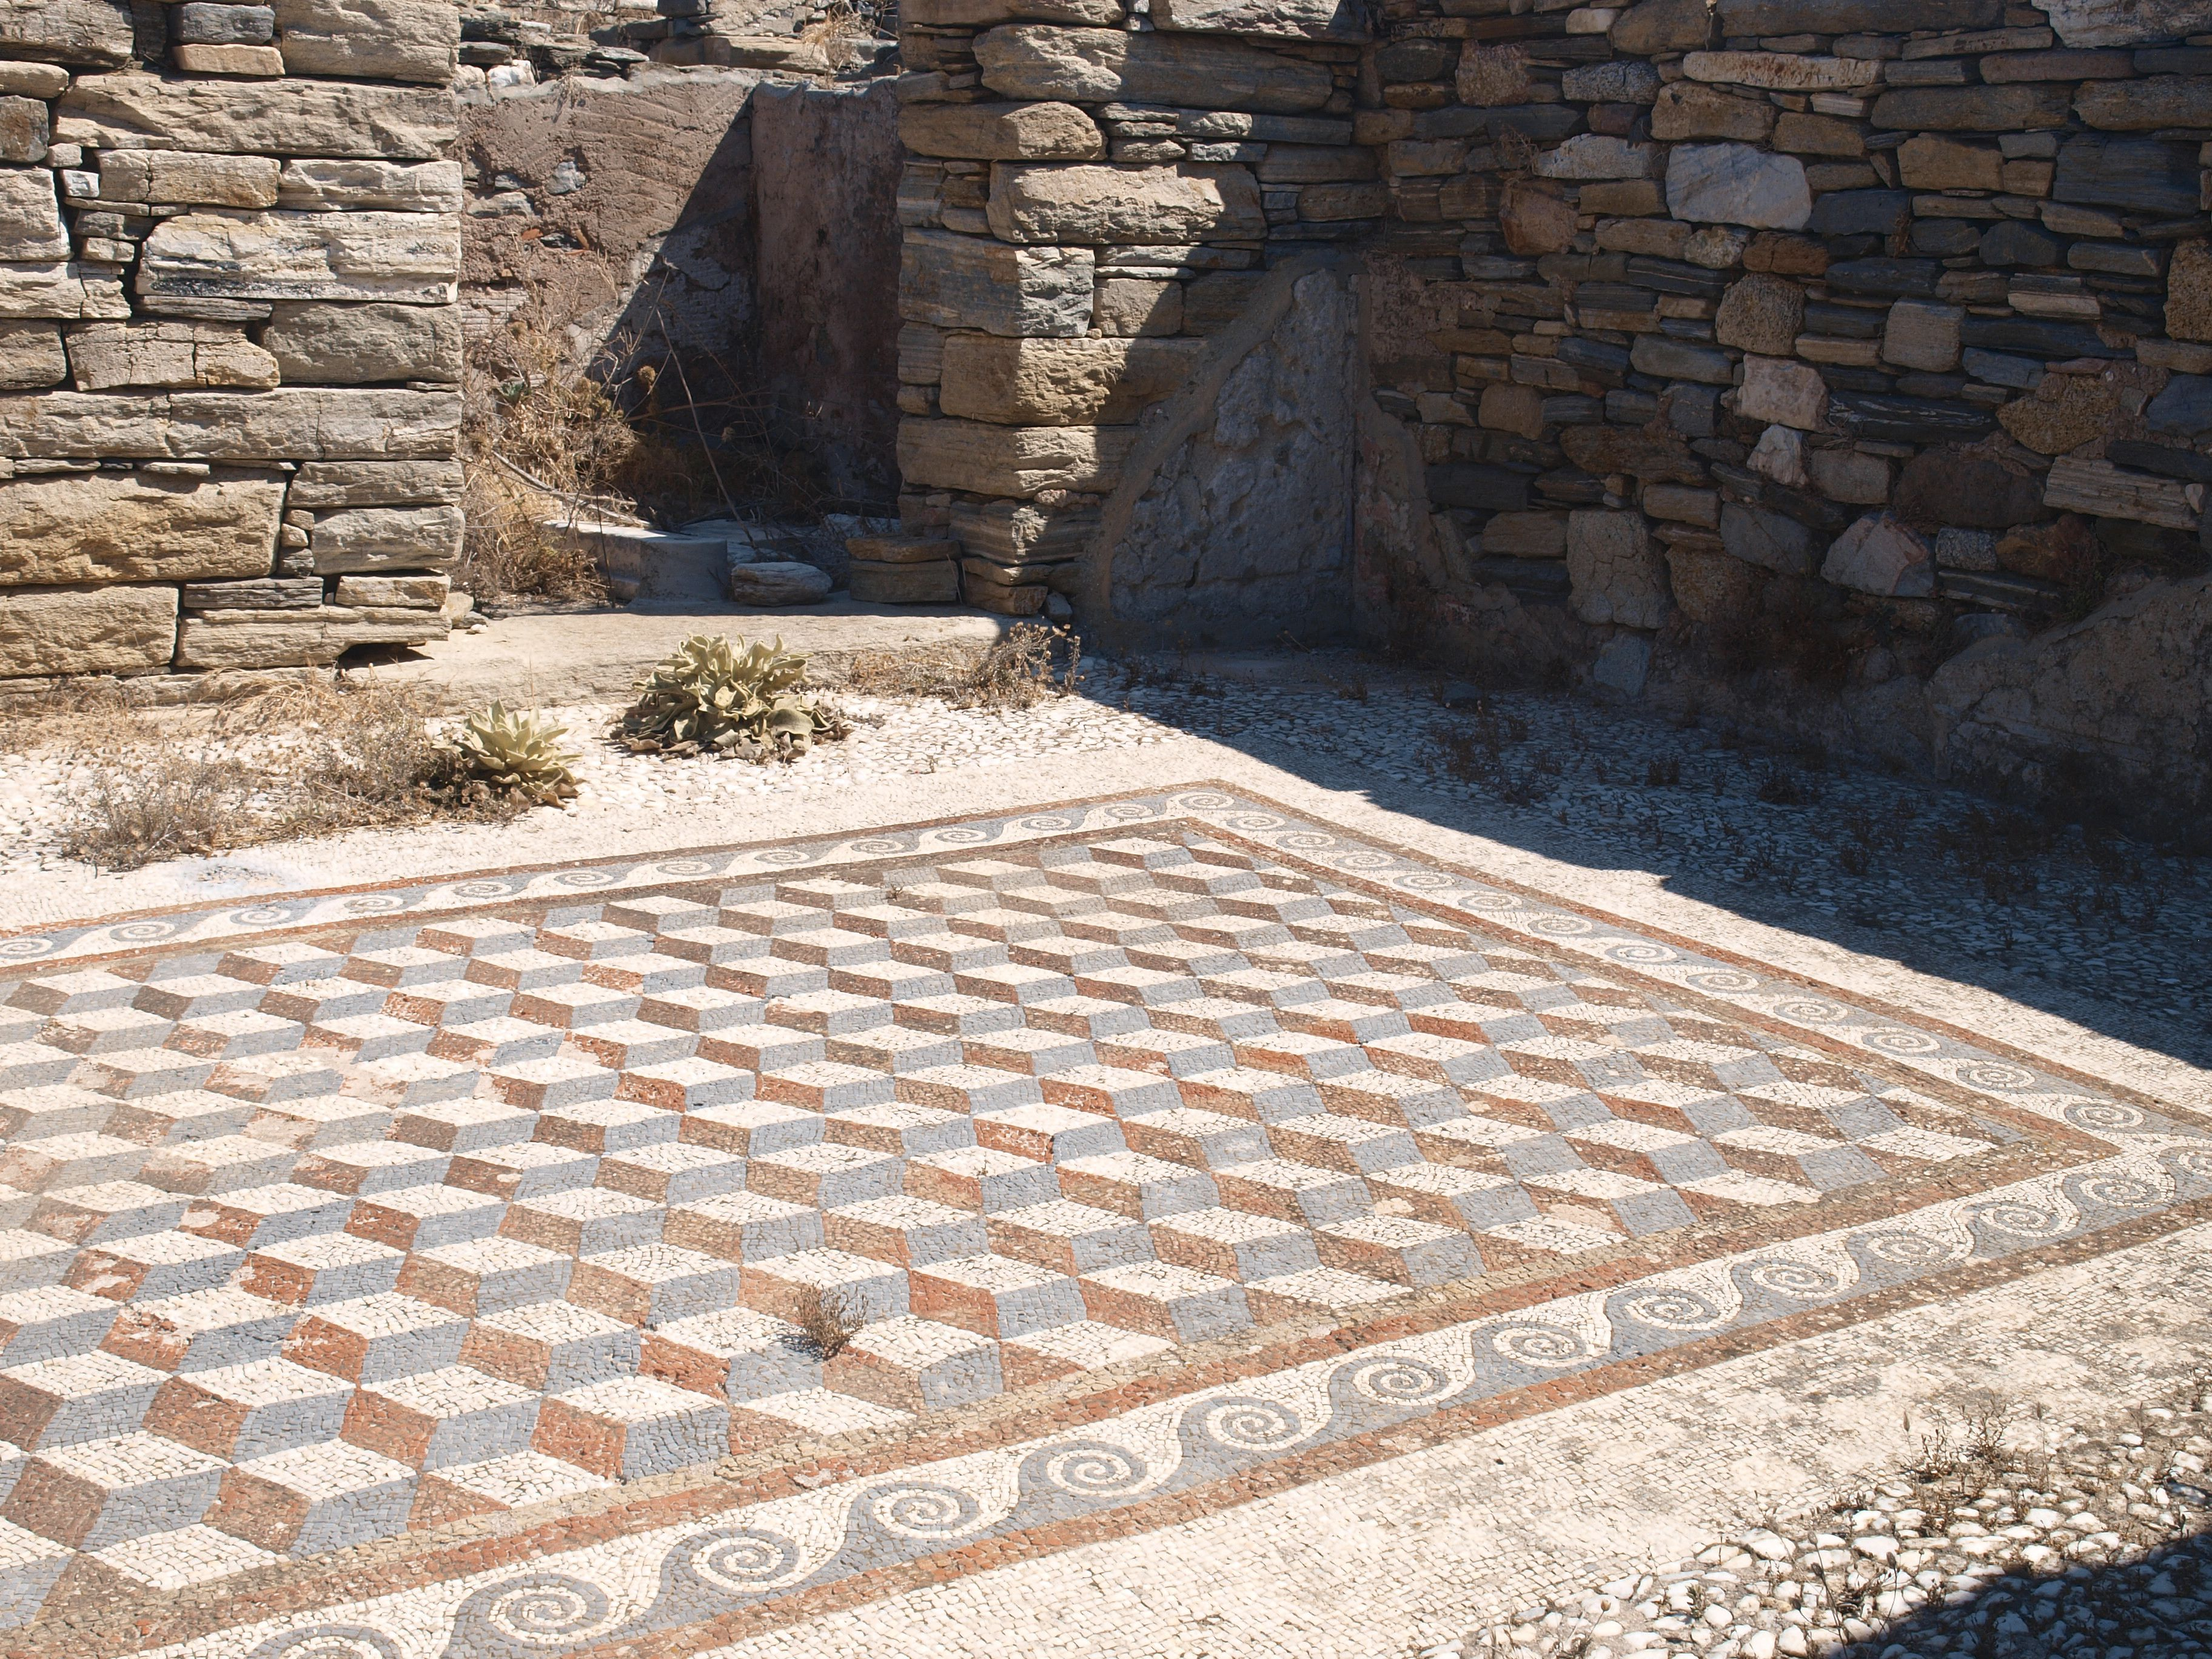 Mosaic Floor From A Roman Villa Of Ancient Corinth